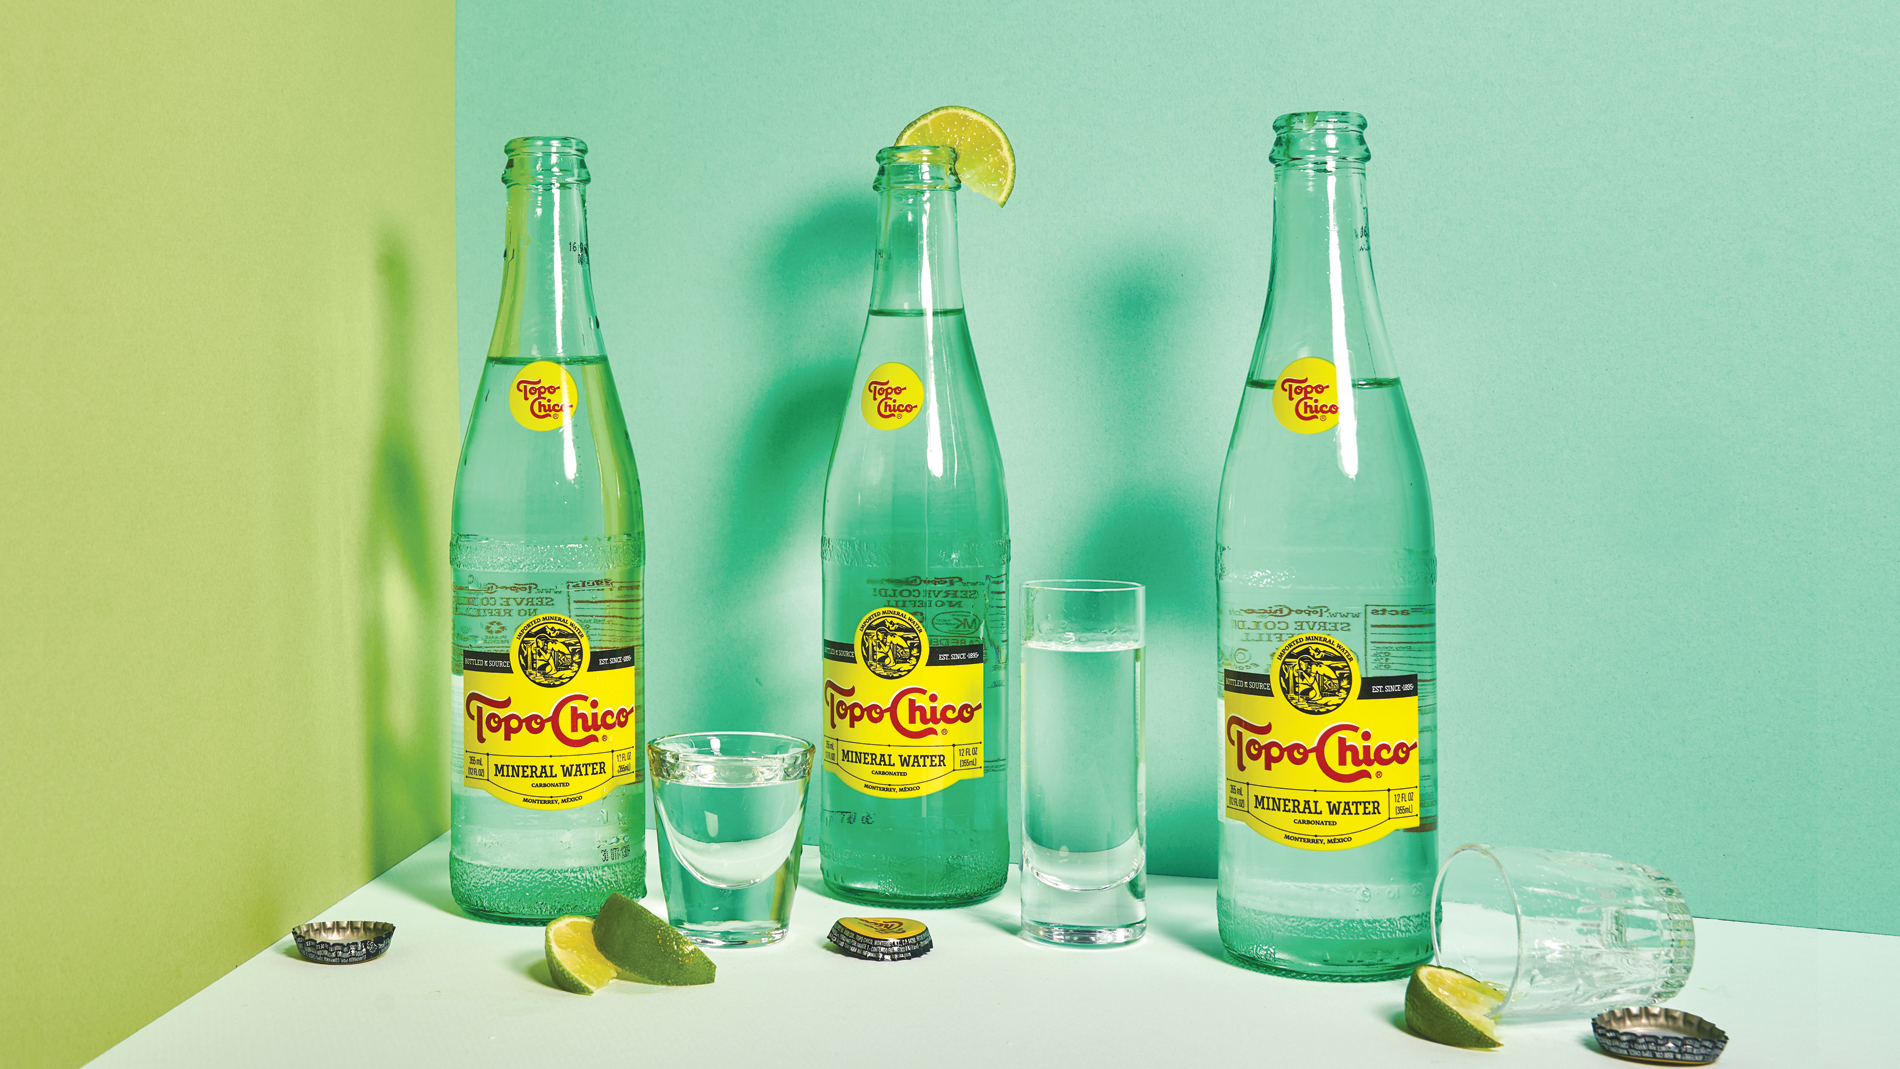 bottles of topo chico with lime wedges